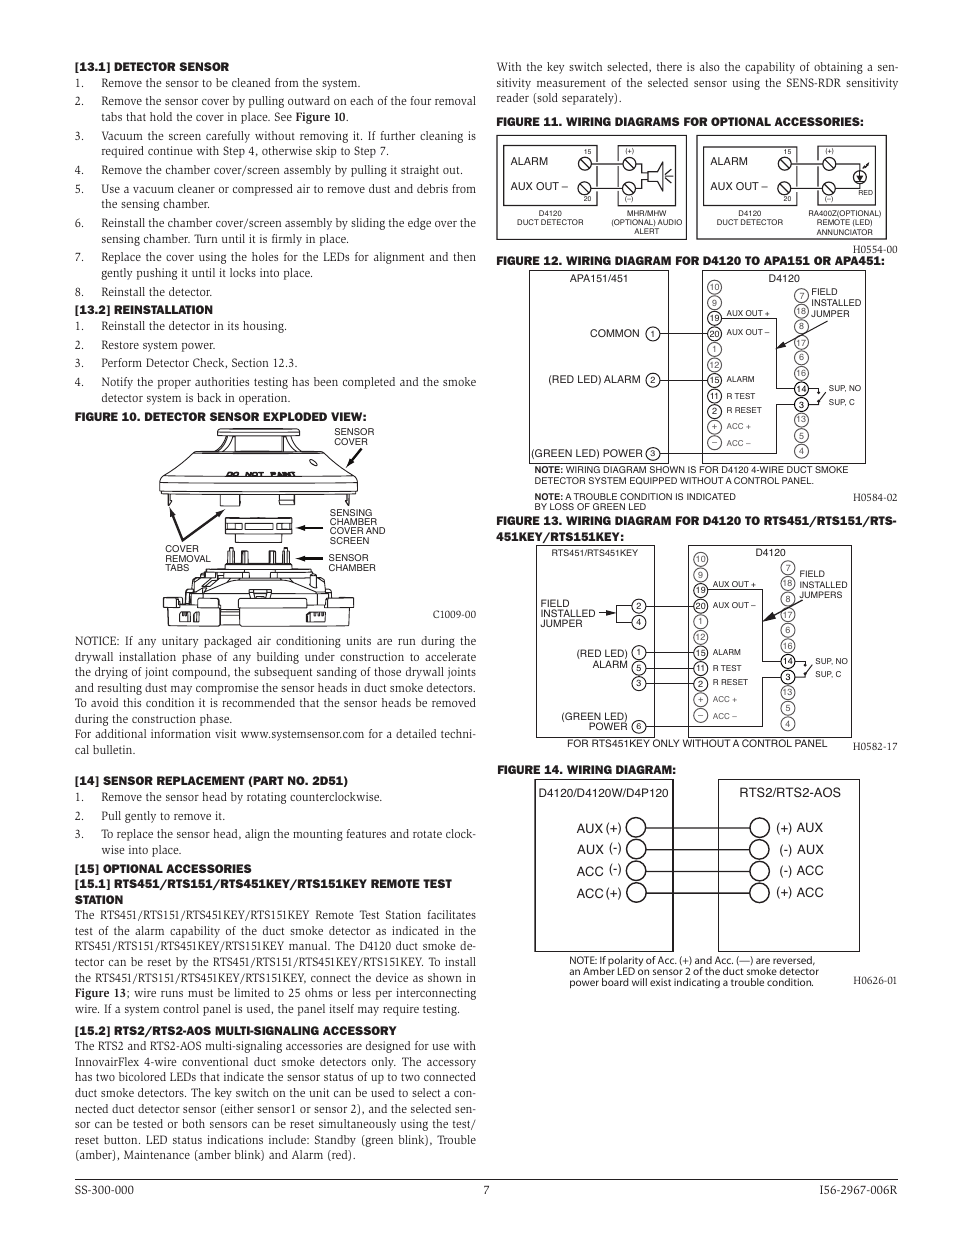 WRG-2891] 2014 Jeep Grand Cherokee Headlight Wiring Diagram on jeep cherokee xj wiring diagrams, jeep jk headlight wiring diagram, jeep wrangler fuse box diagram, 99 jeep cherokee fuse diagram, 1999 jeep cherokee wiring diagram,